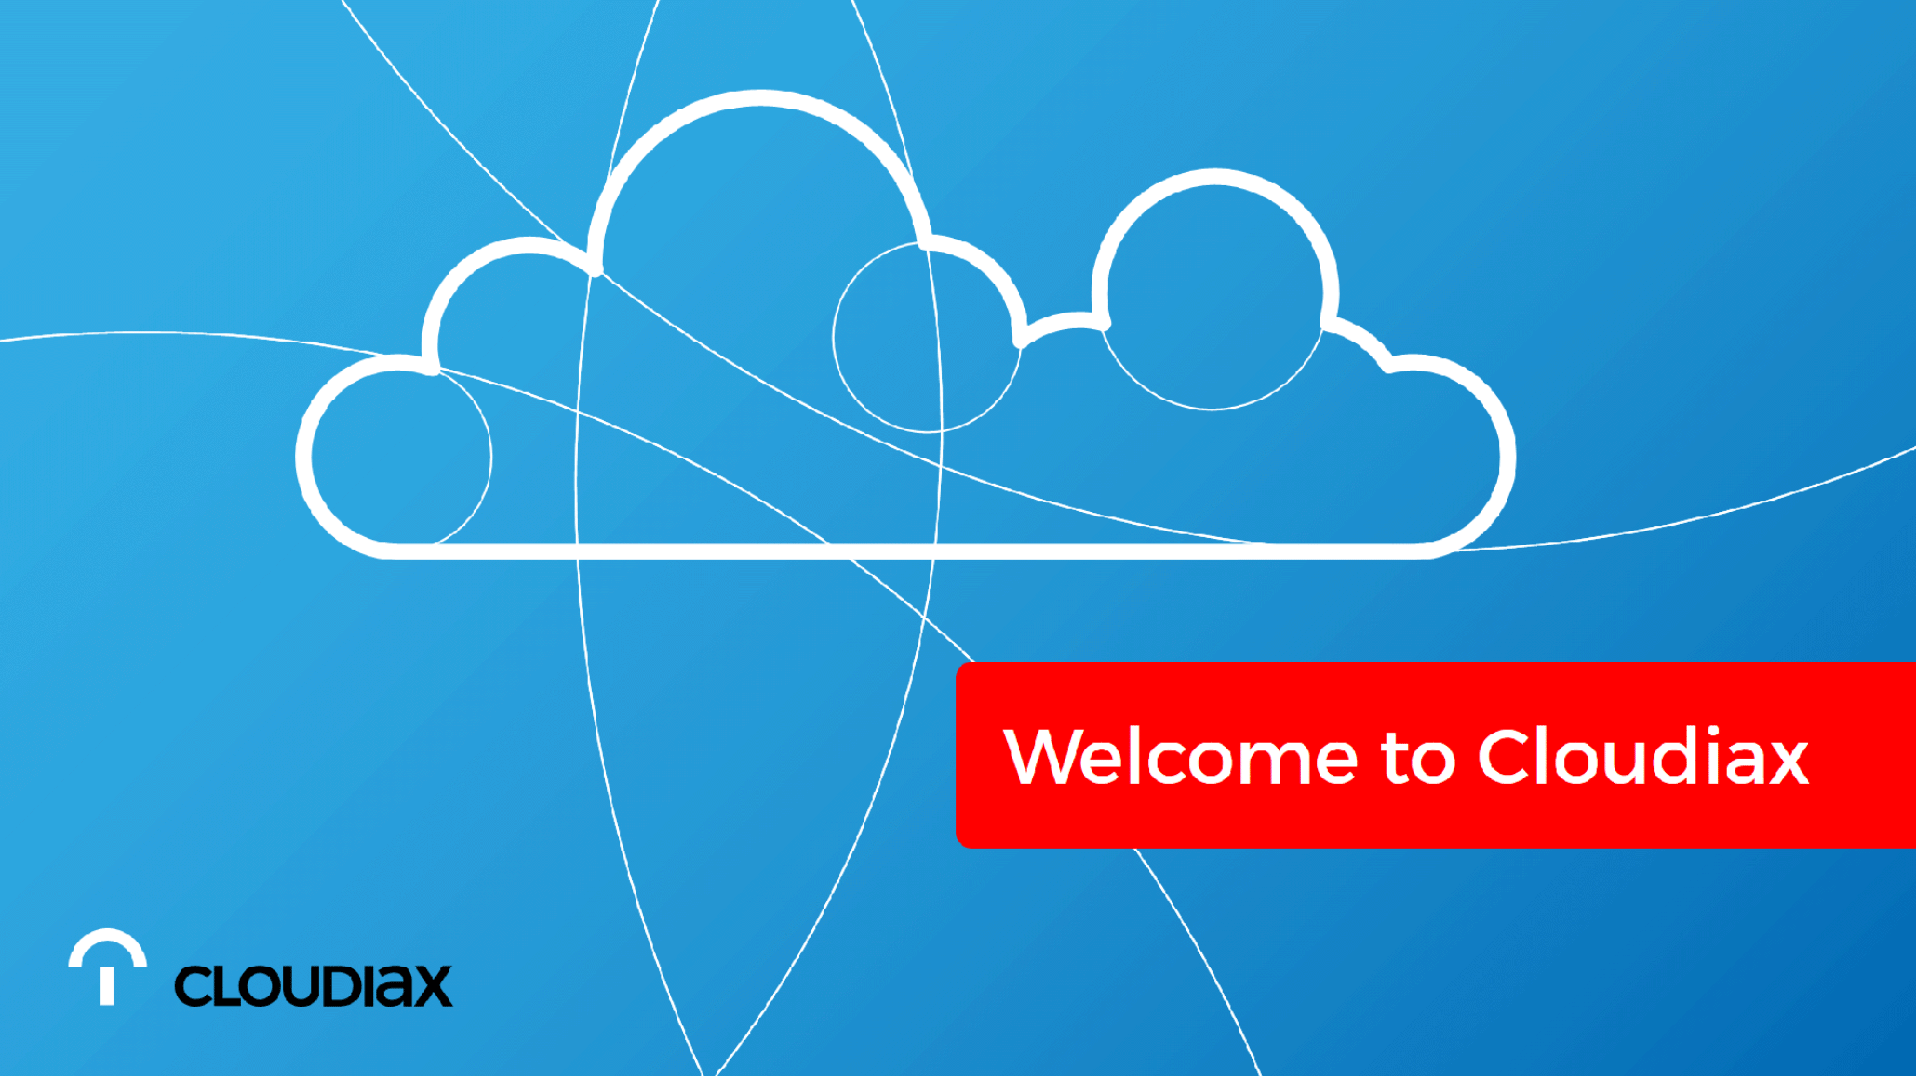 Welcome to Cloudiax